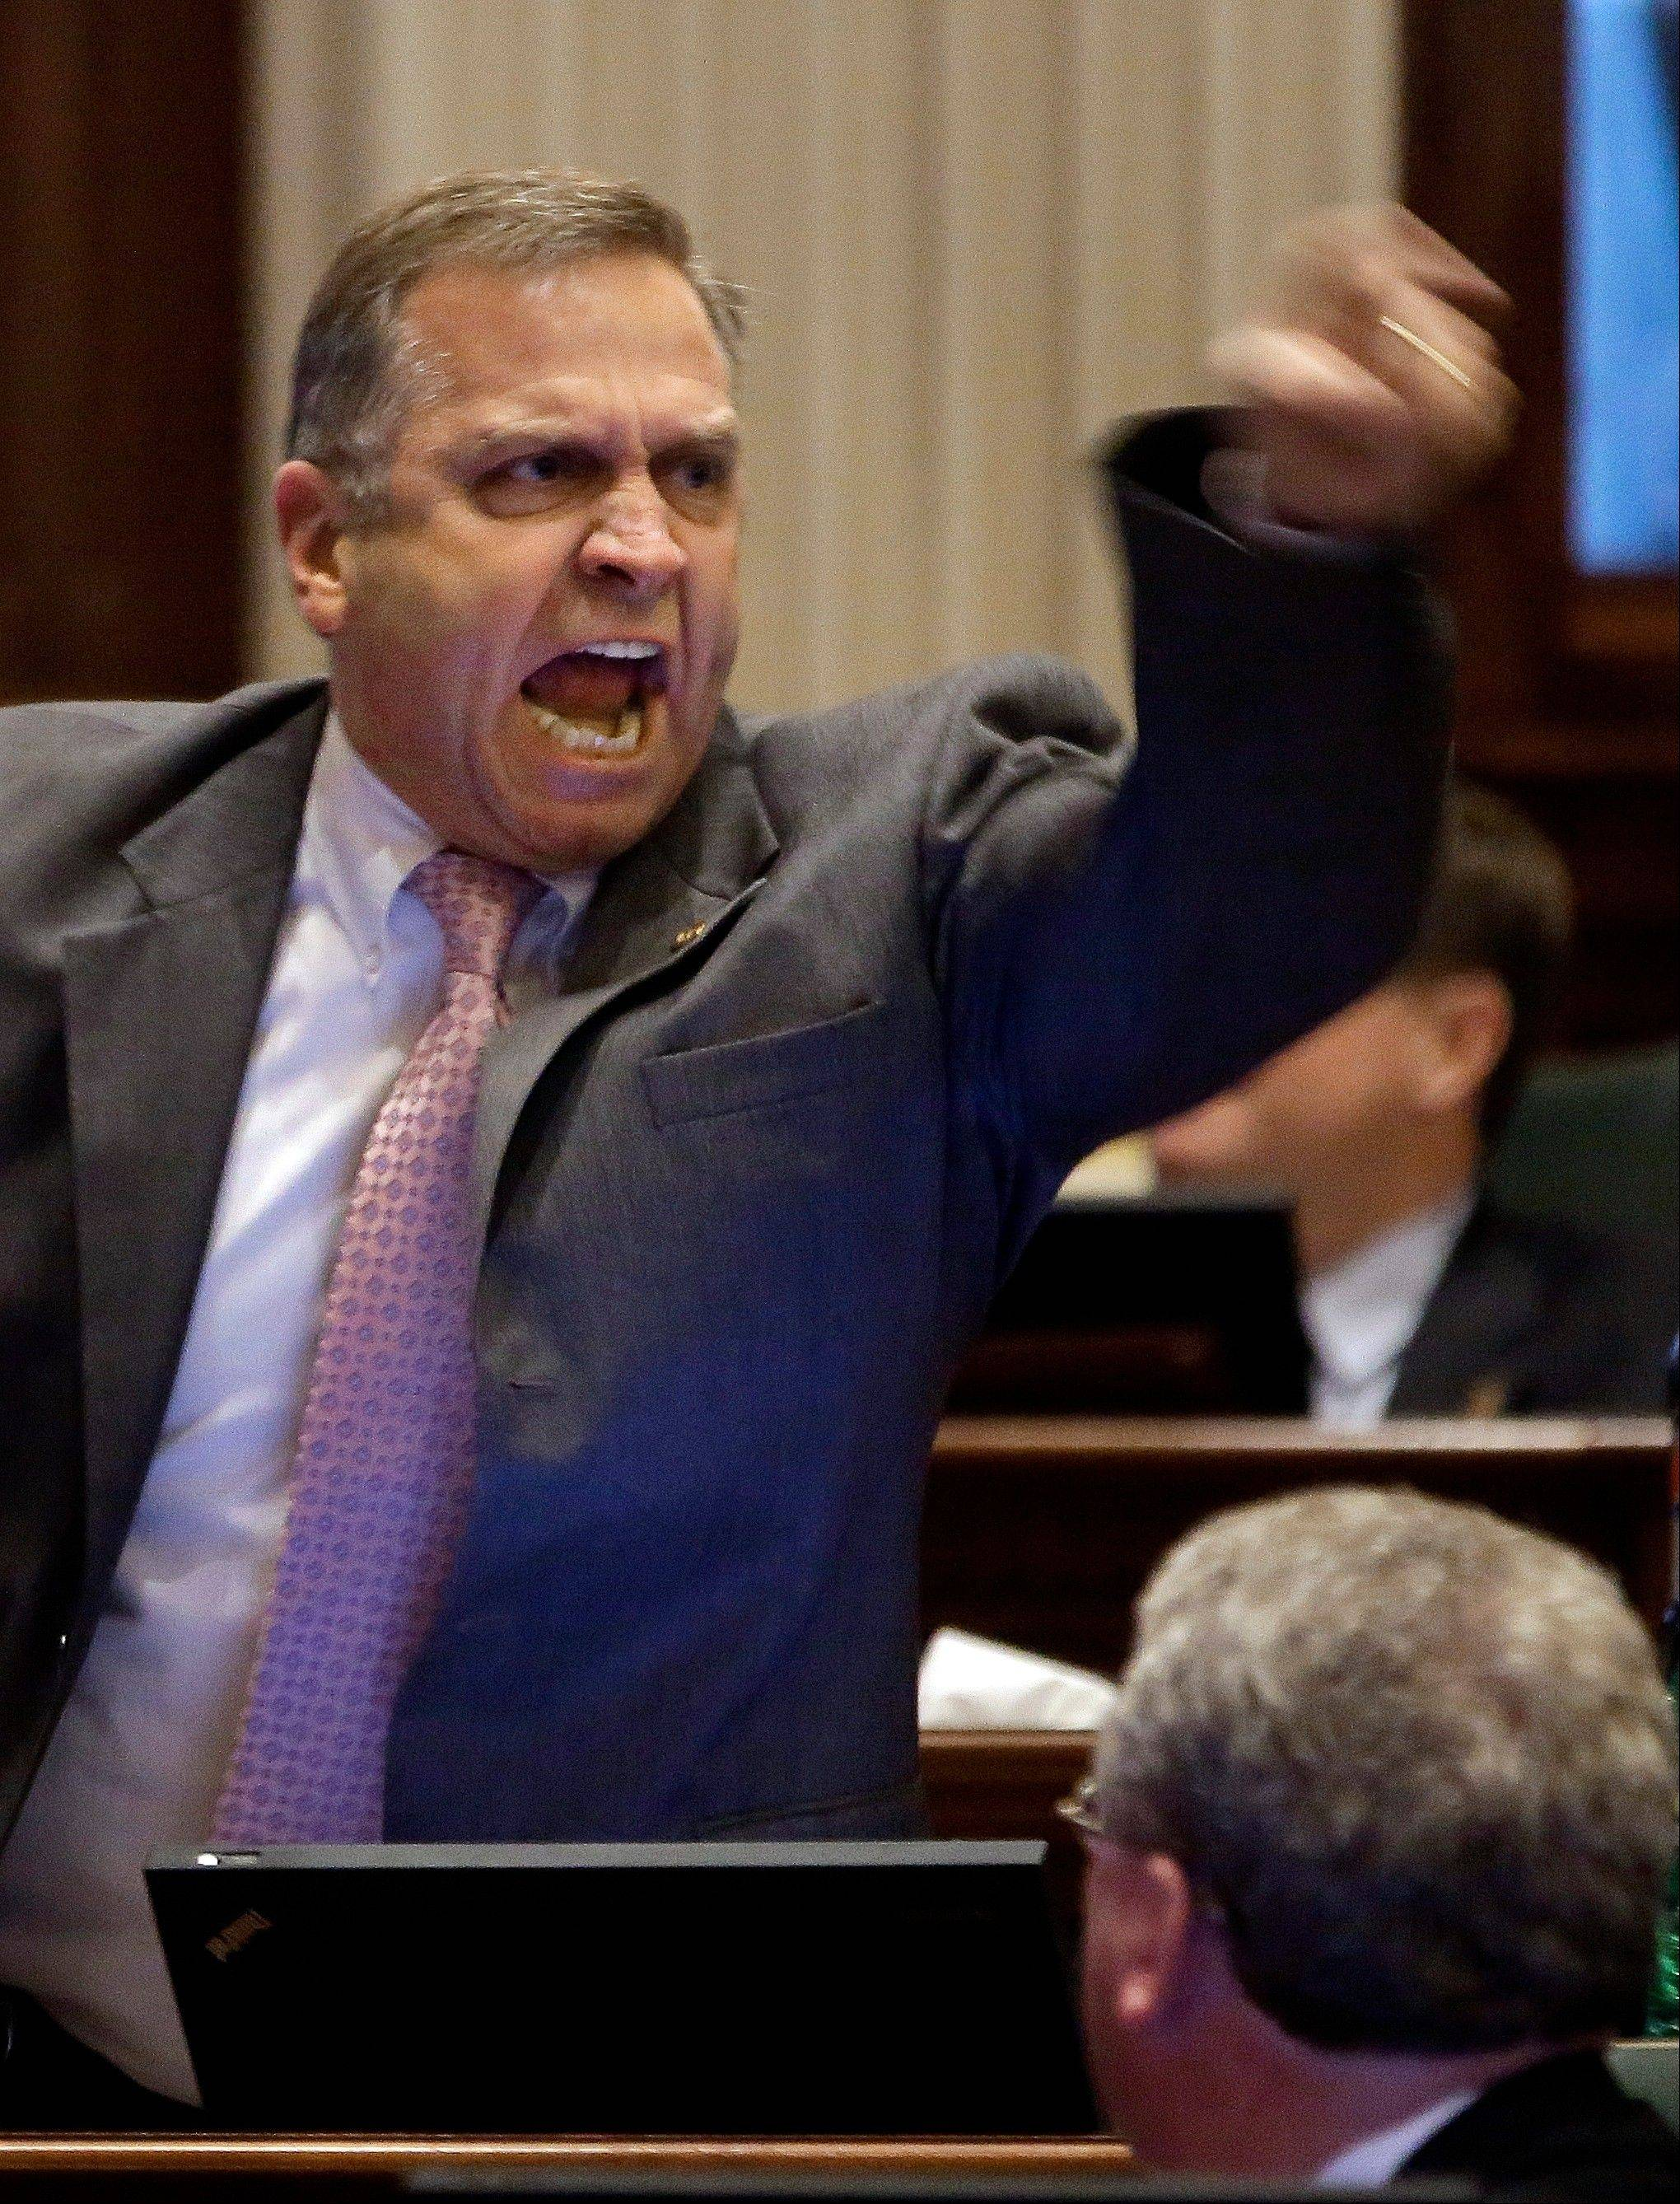 State Rep. Mike Bost, a Murphysboro Republican, vehemently argues gun legislation while on the House floor Wednesday in Springfield.